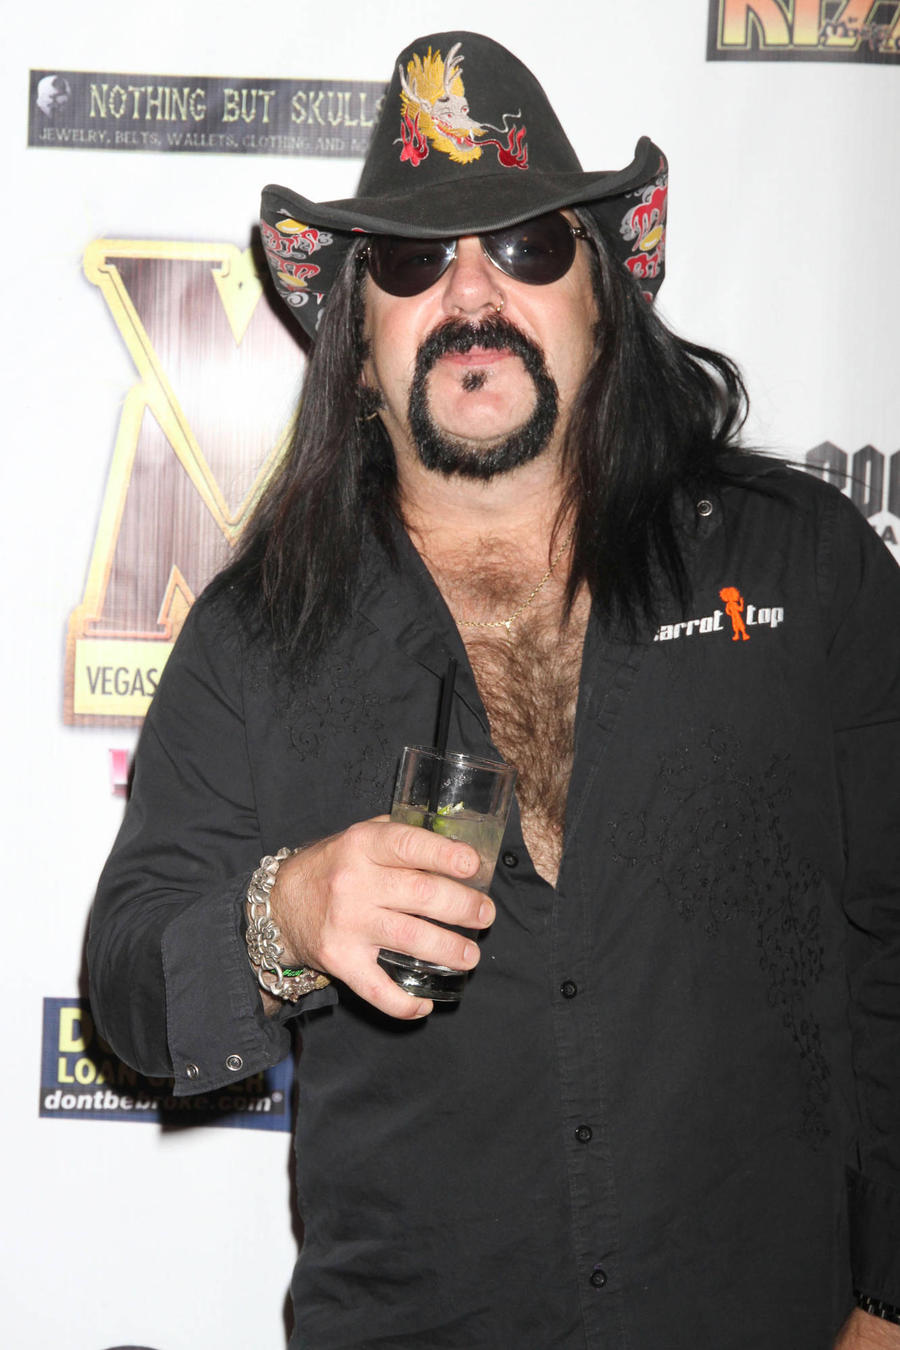 Rocker Vinnie Paul: 'I Can't Believe Another Musician Has Been Gunned Down'